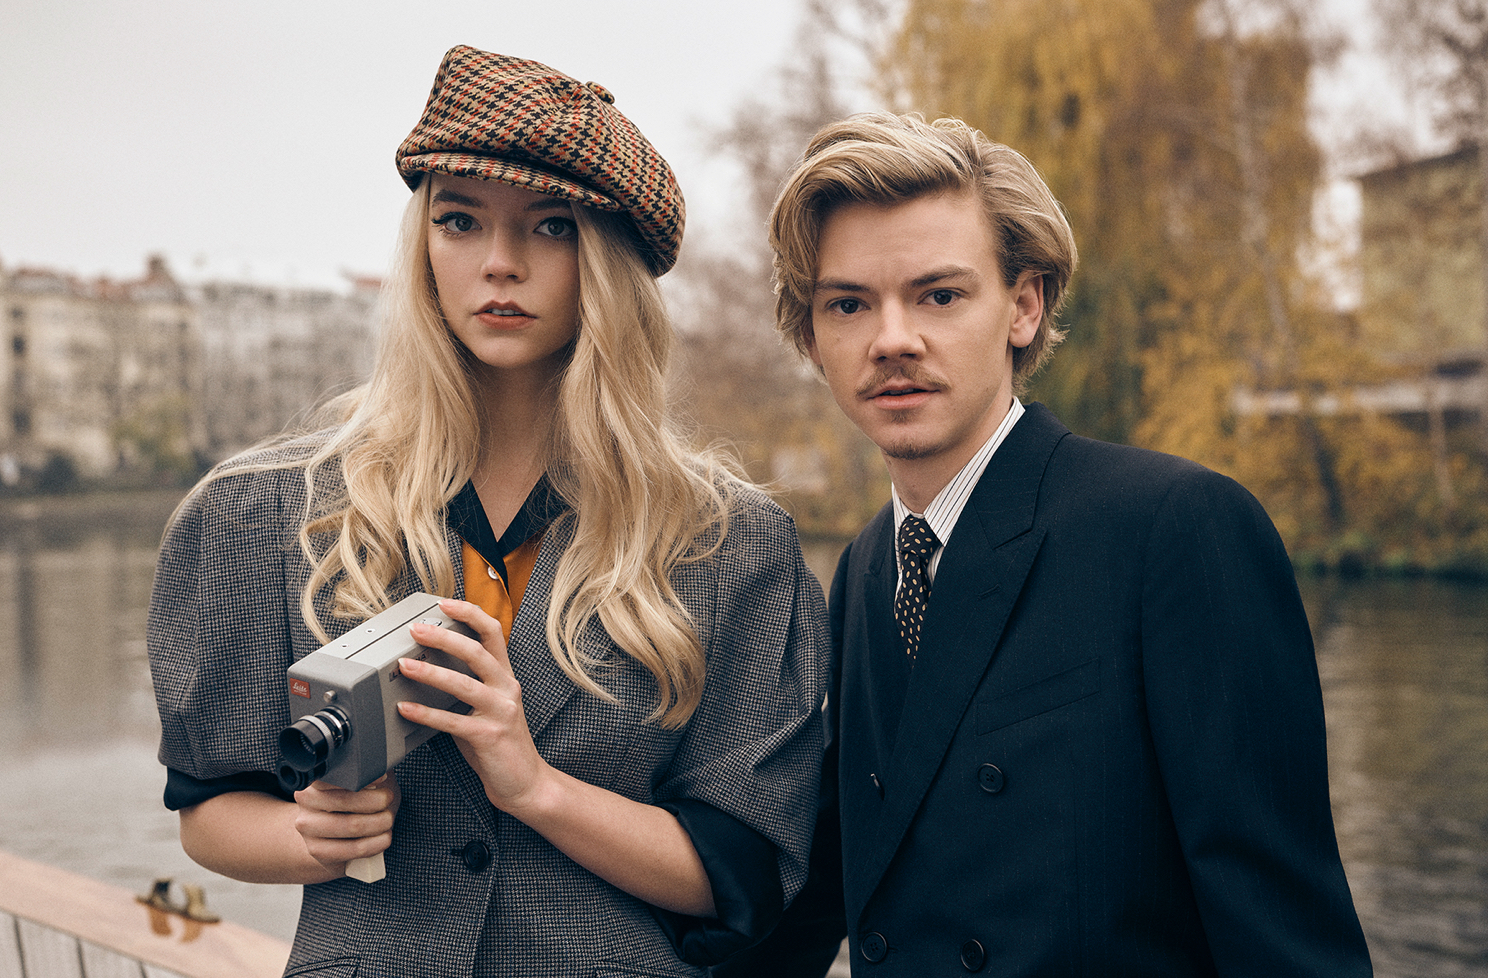 Anya Taylor-Joy and Thomas Brodie-Sangster